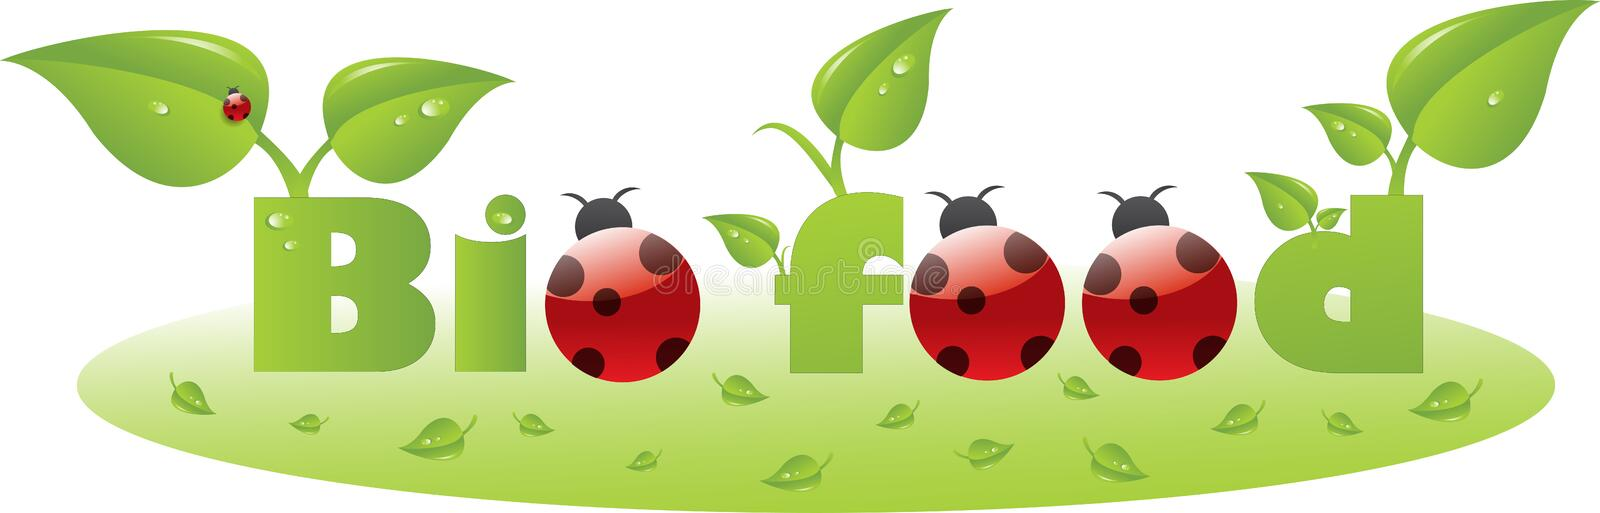 Bio food text caption with ladybugs vector illustration